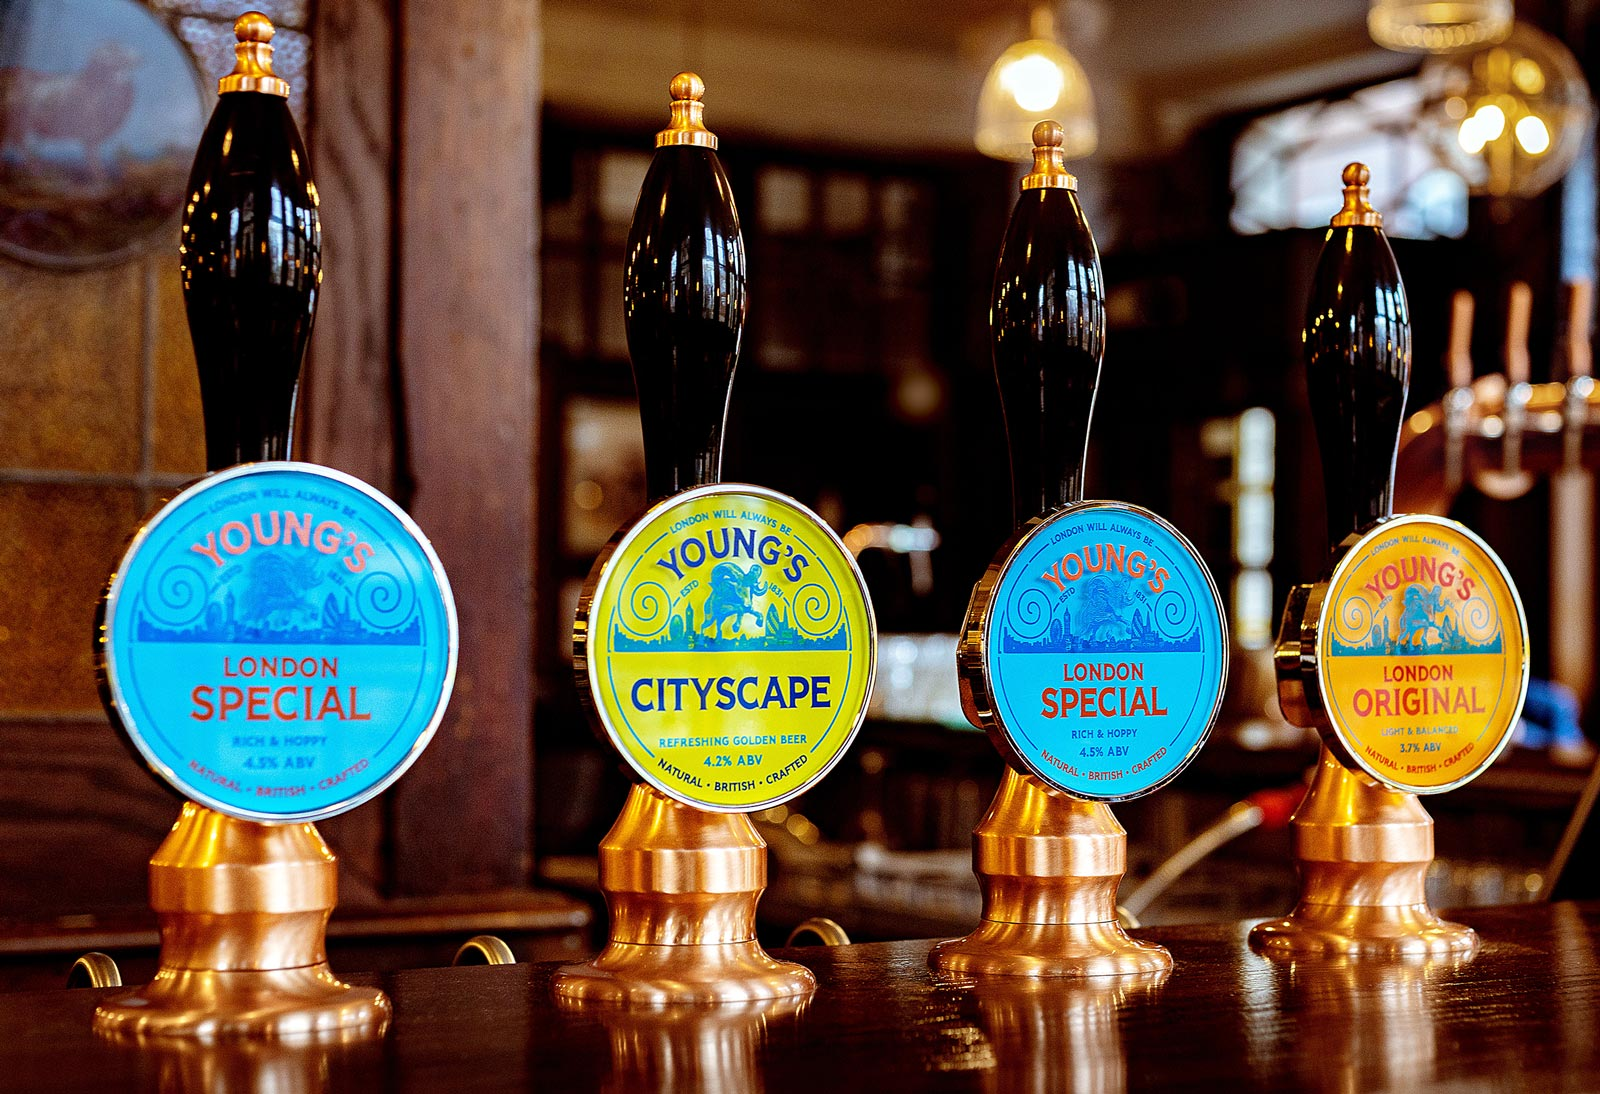 Photograph of the Young's beer pumps. London special, Cityscape, London Original